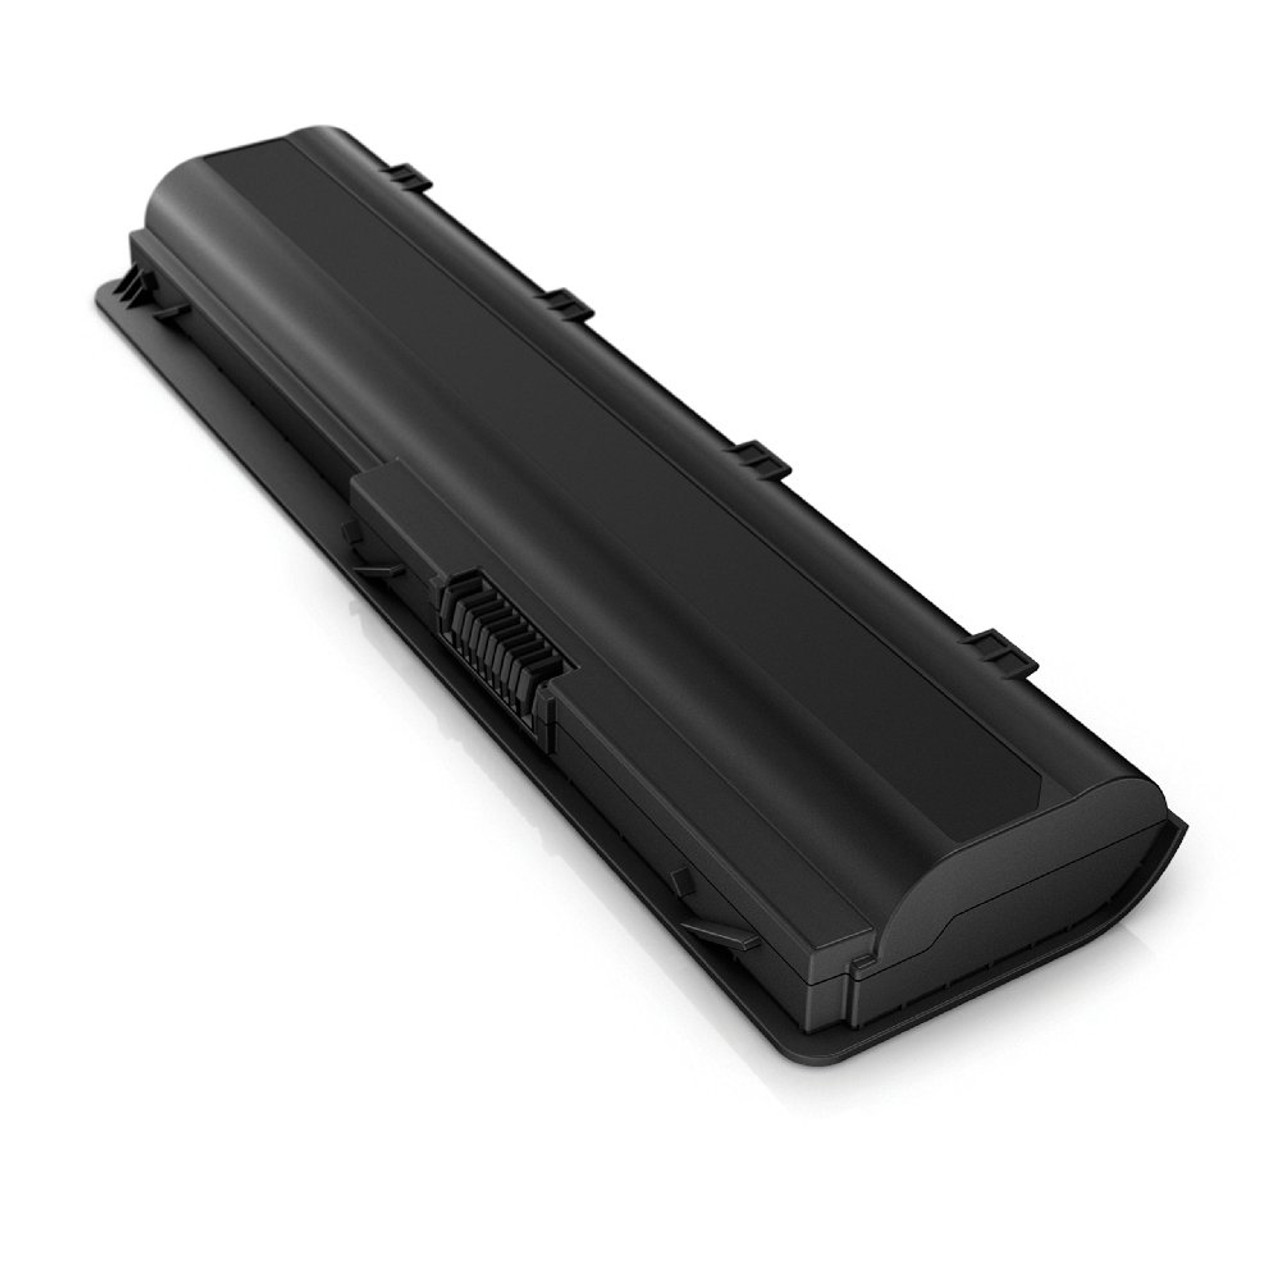 0H132V - Dell PERC H730/H730P Blade Battery